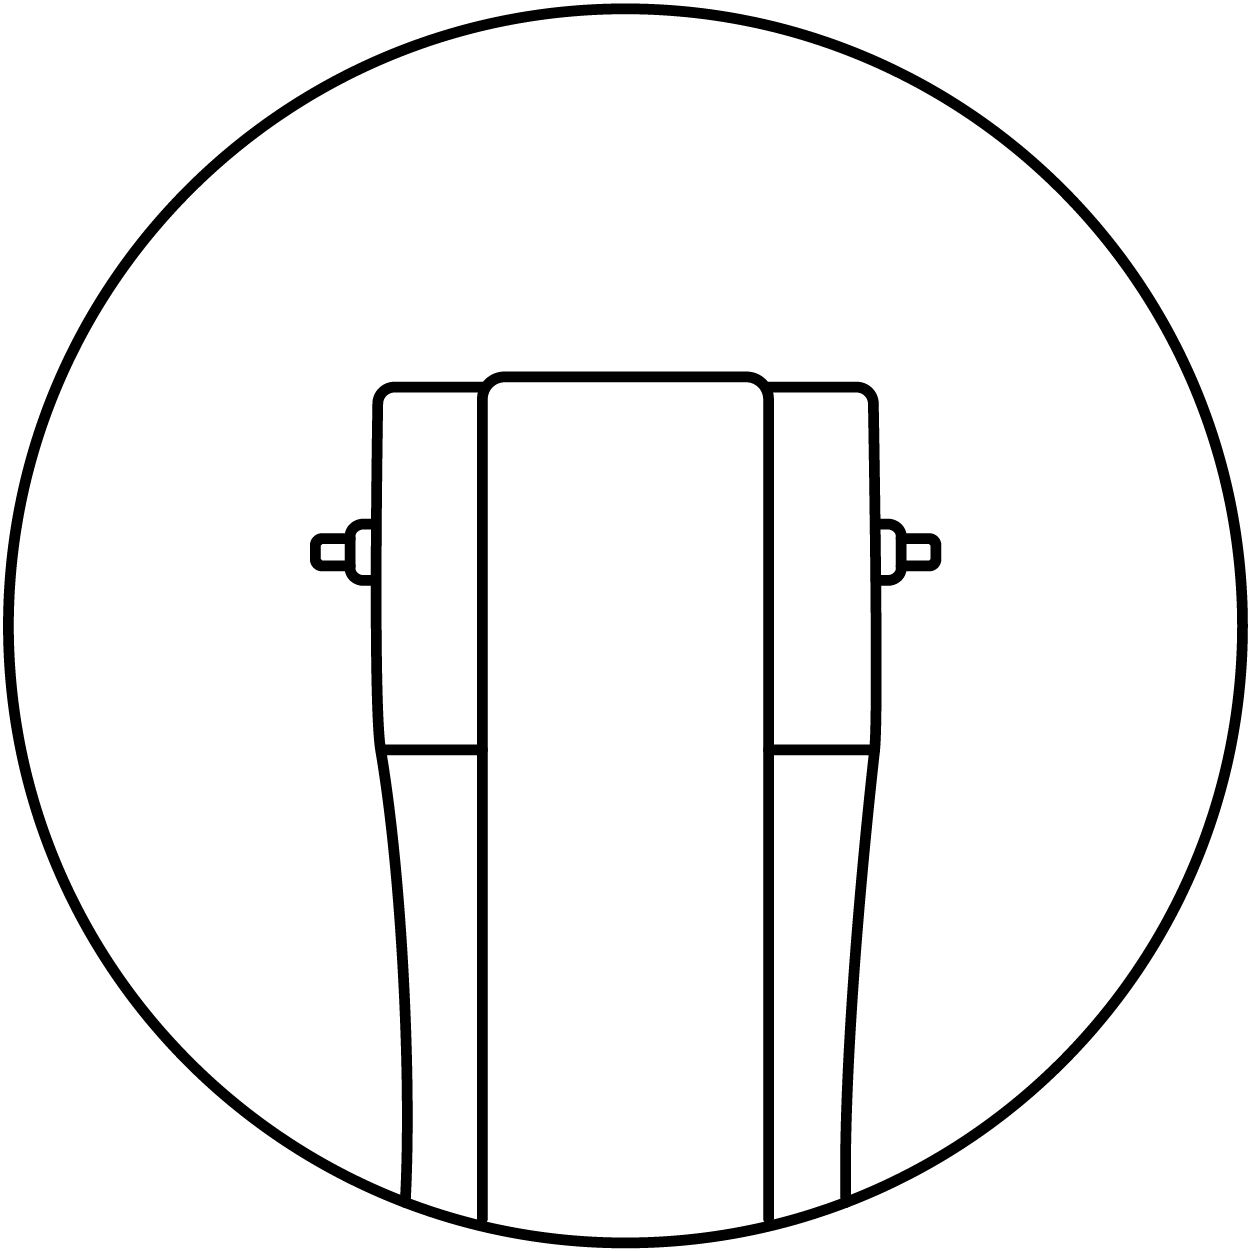 shape of the rubber strap adapted to the watch